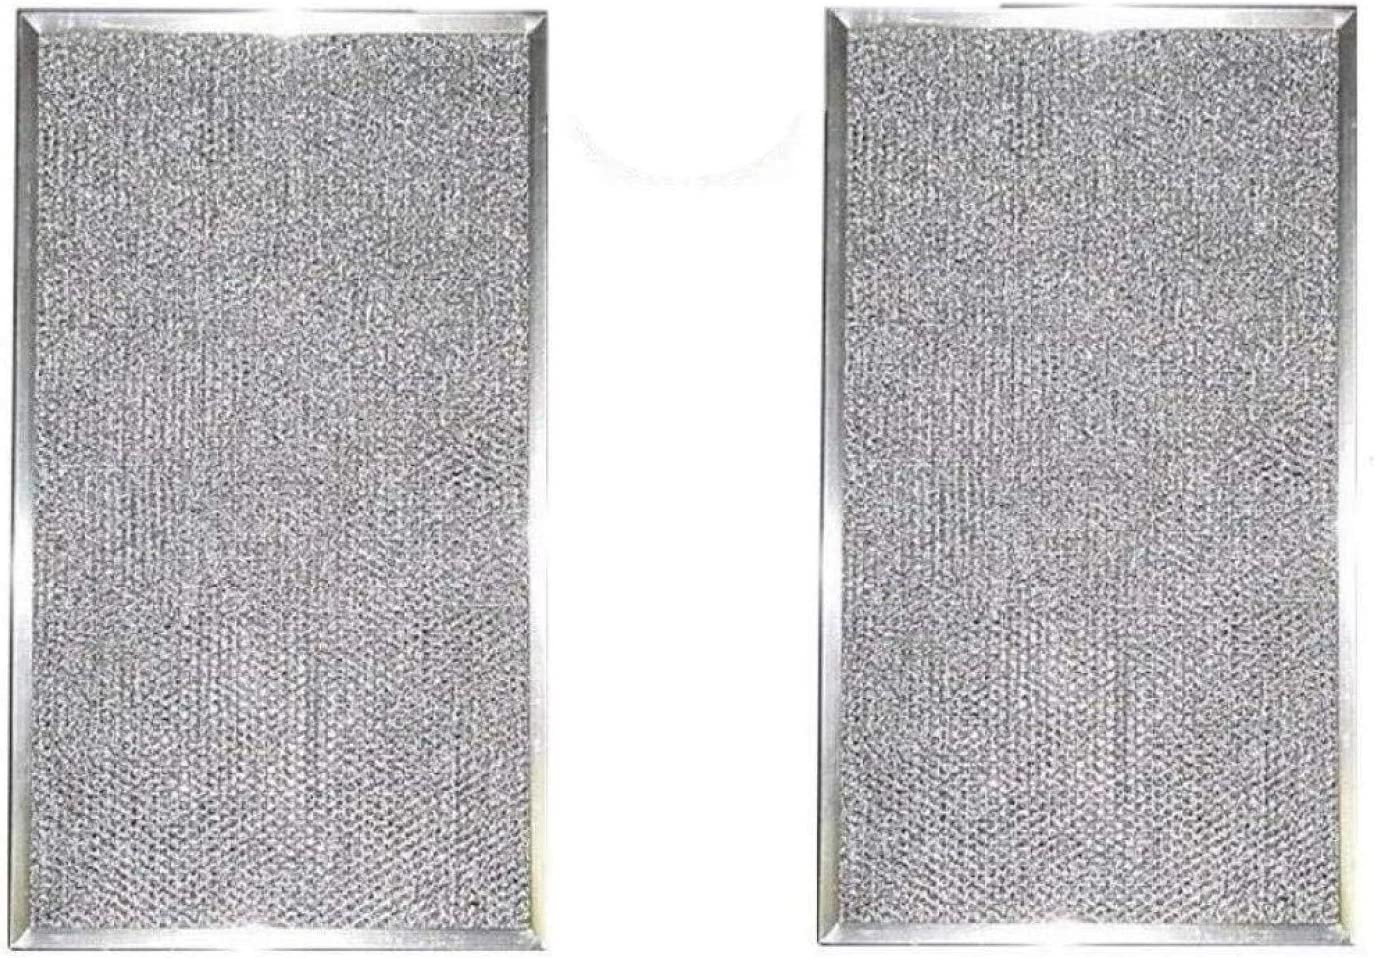 Air Filter Factory 2 Pack Compatible Replacement For Honeywell 203369 HVAC Furnace Aluminum Pre/Post Filters